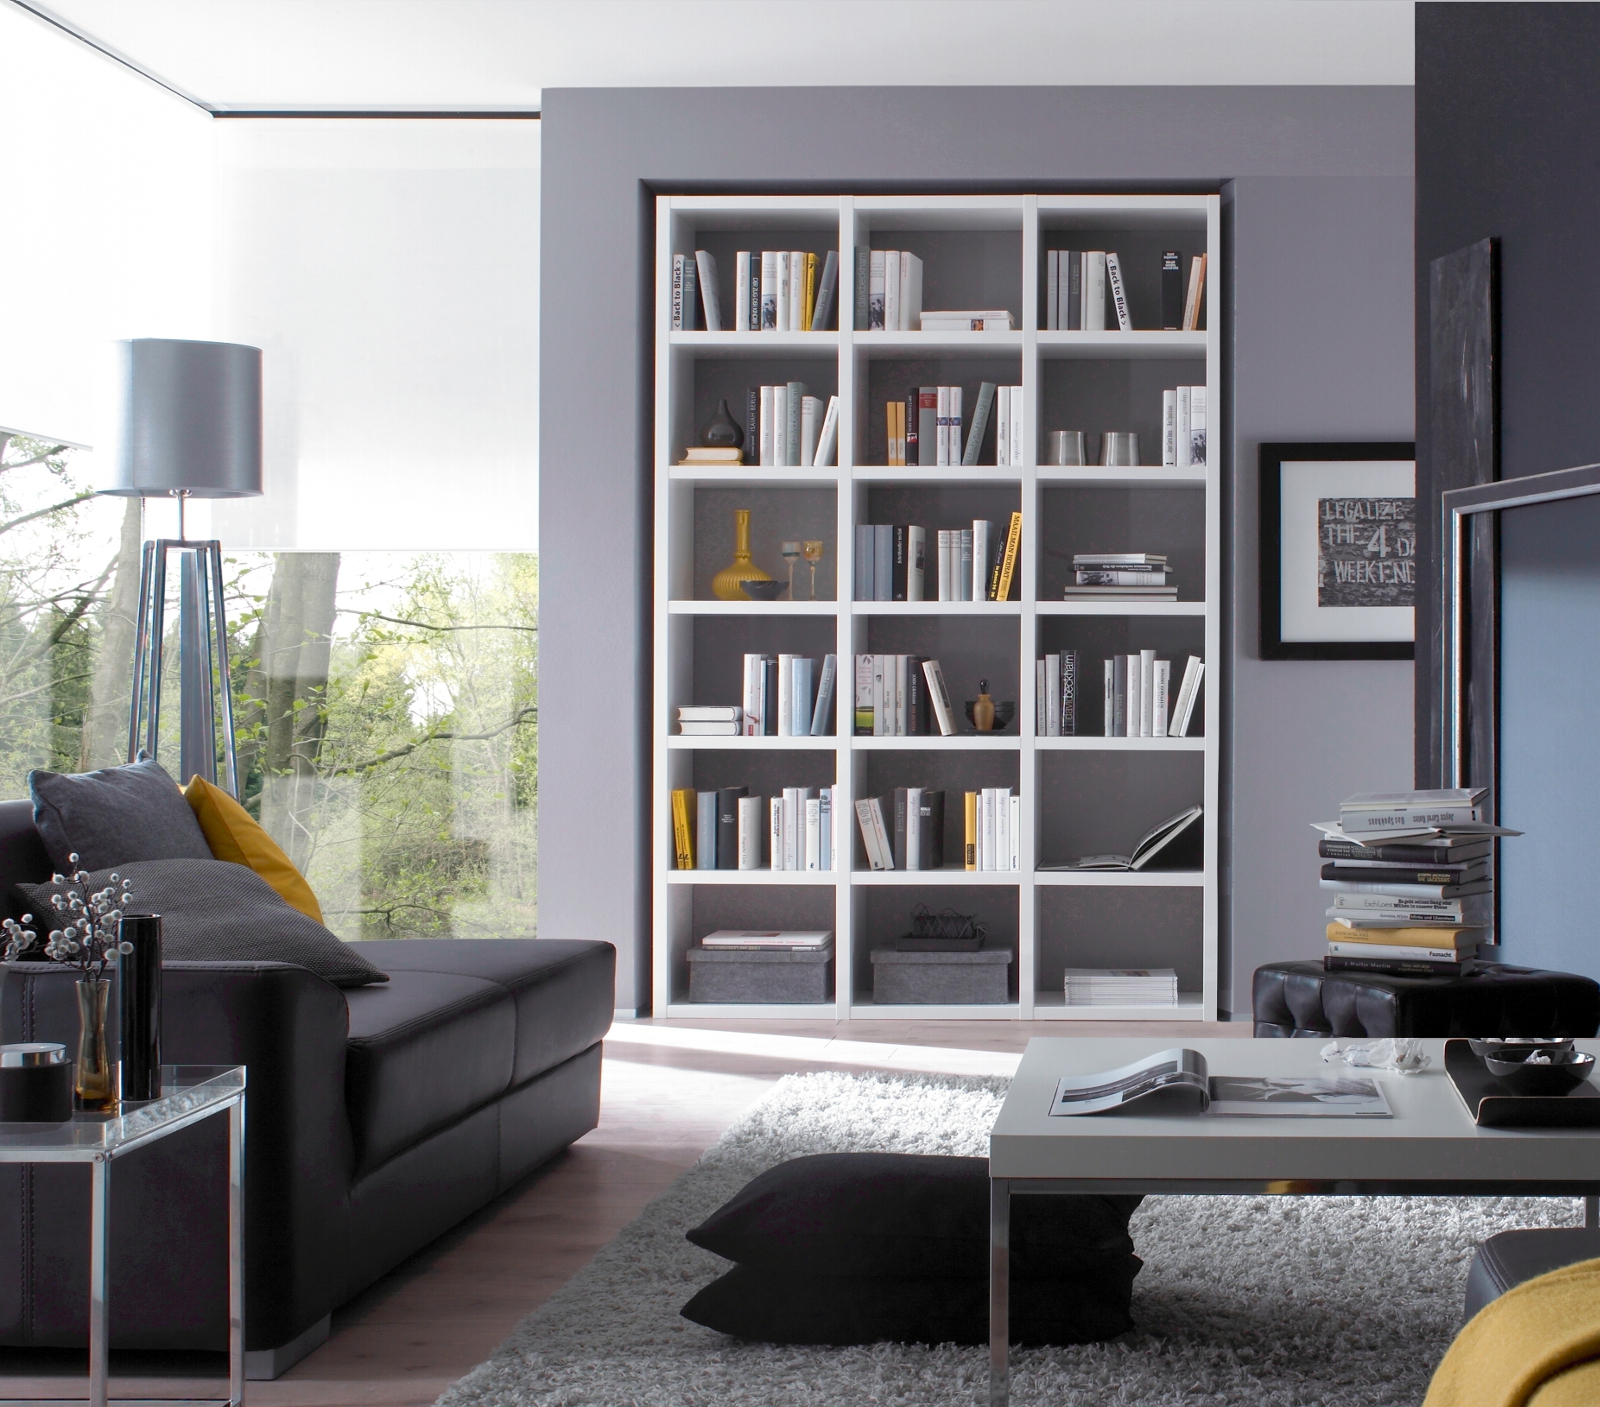 b cherwand bibliothek raumteiler wei hochglanz. Black Bedroom Furniture Sets. Home Design Ideas